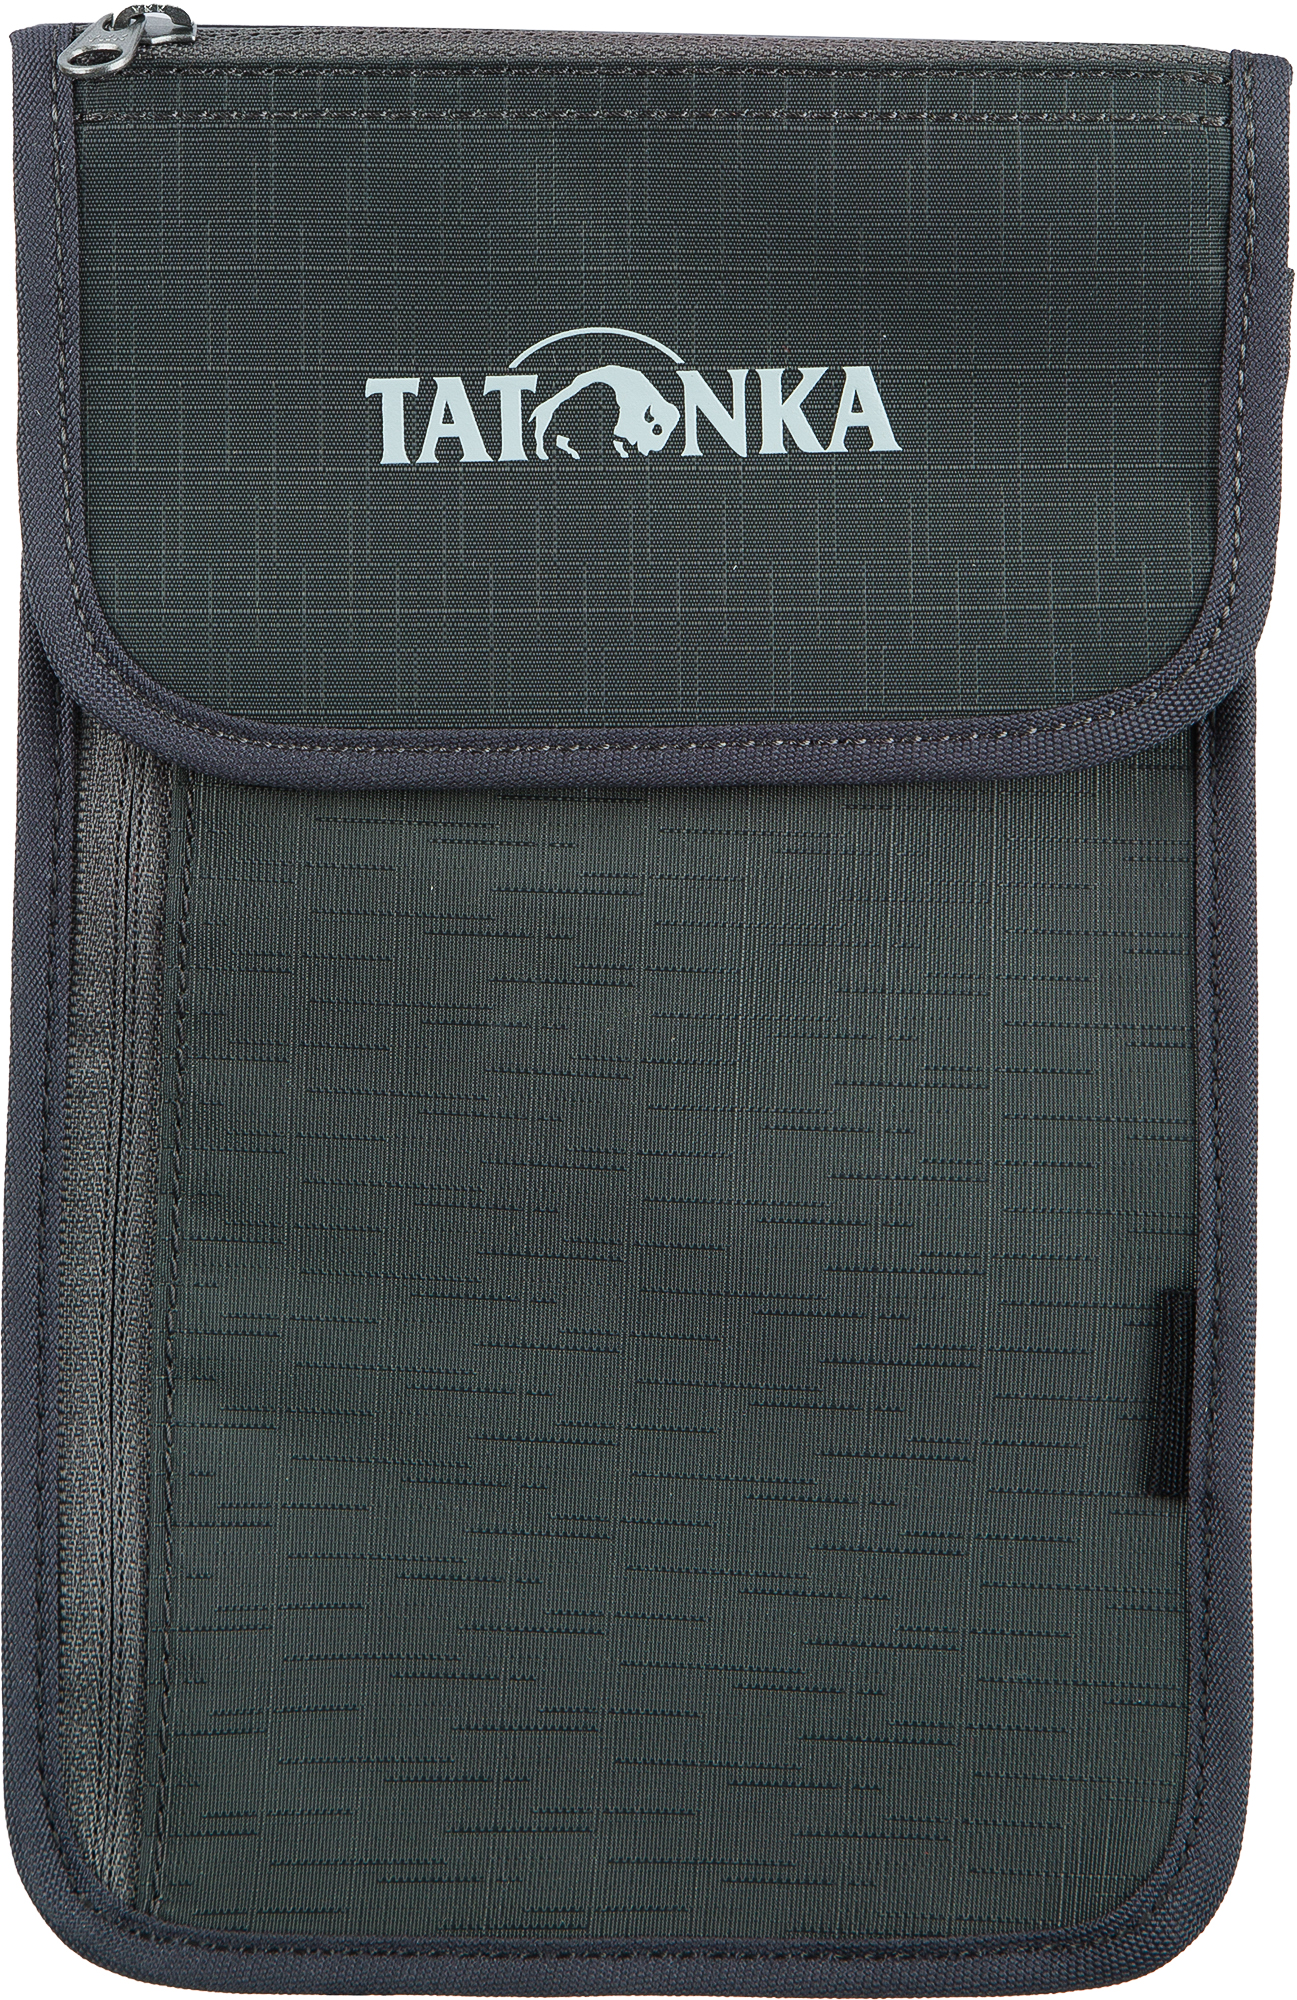 Tatonka Кошелек Tatonka NECK WALLET tatonka wp neck pouch